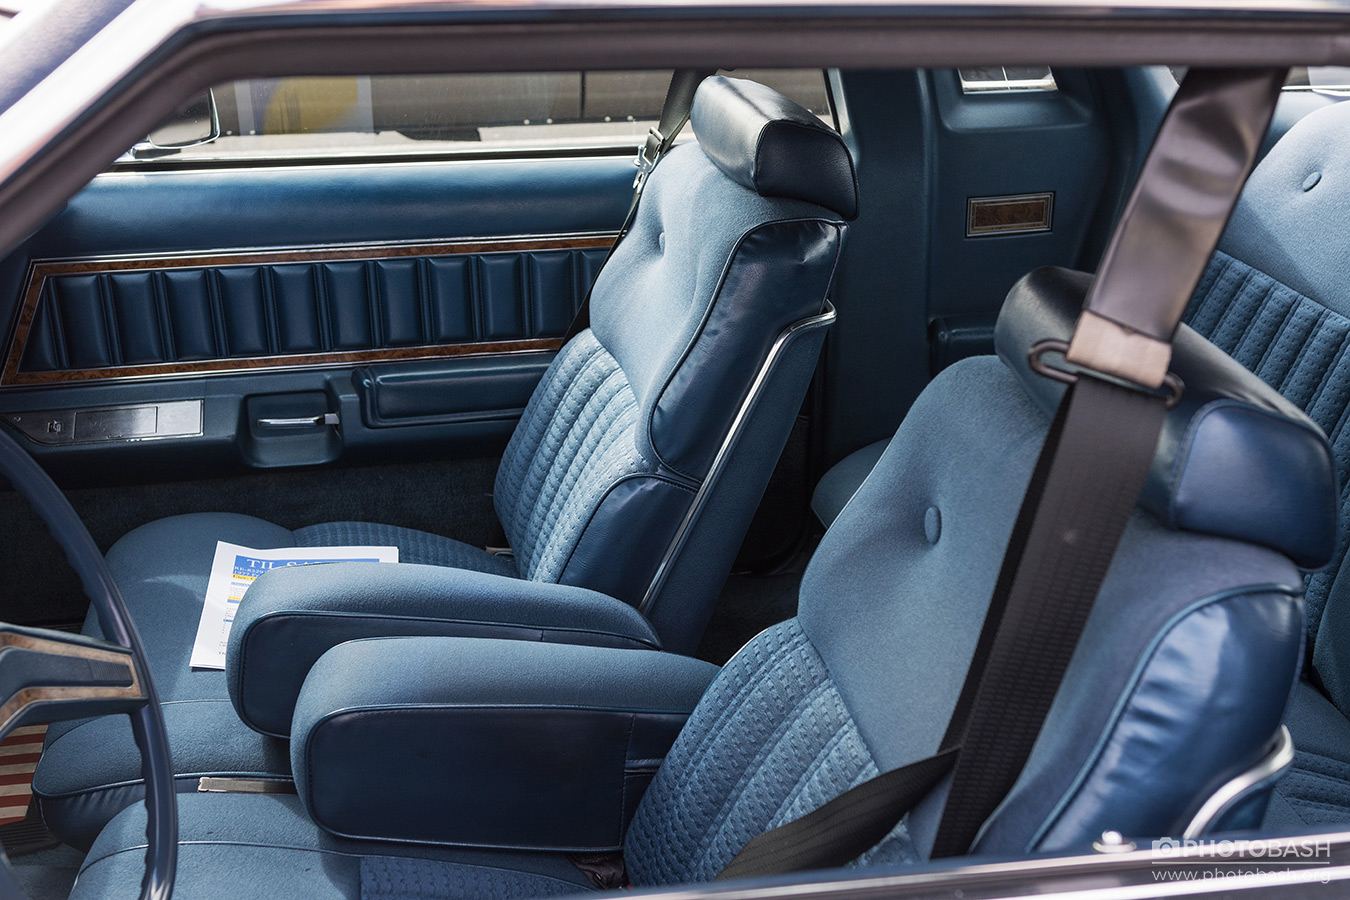 Collector-Cars-Vehicle-Interior.jpg